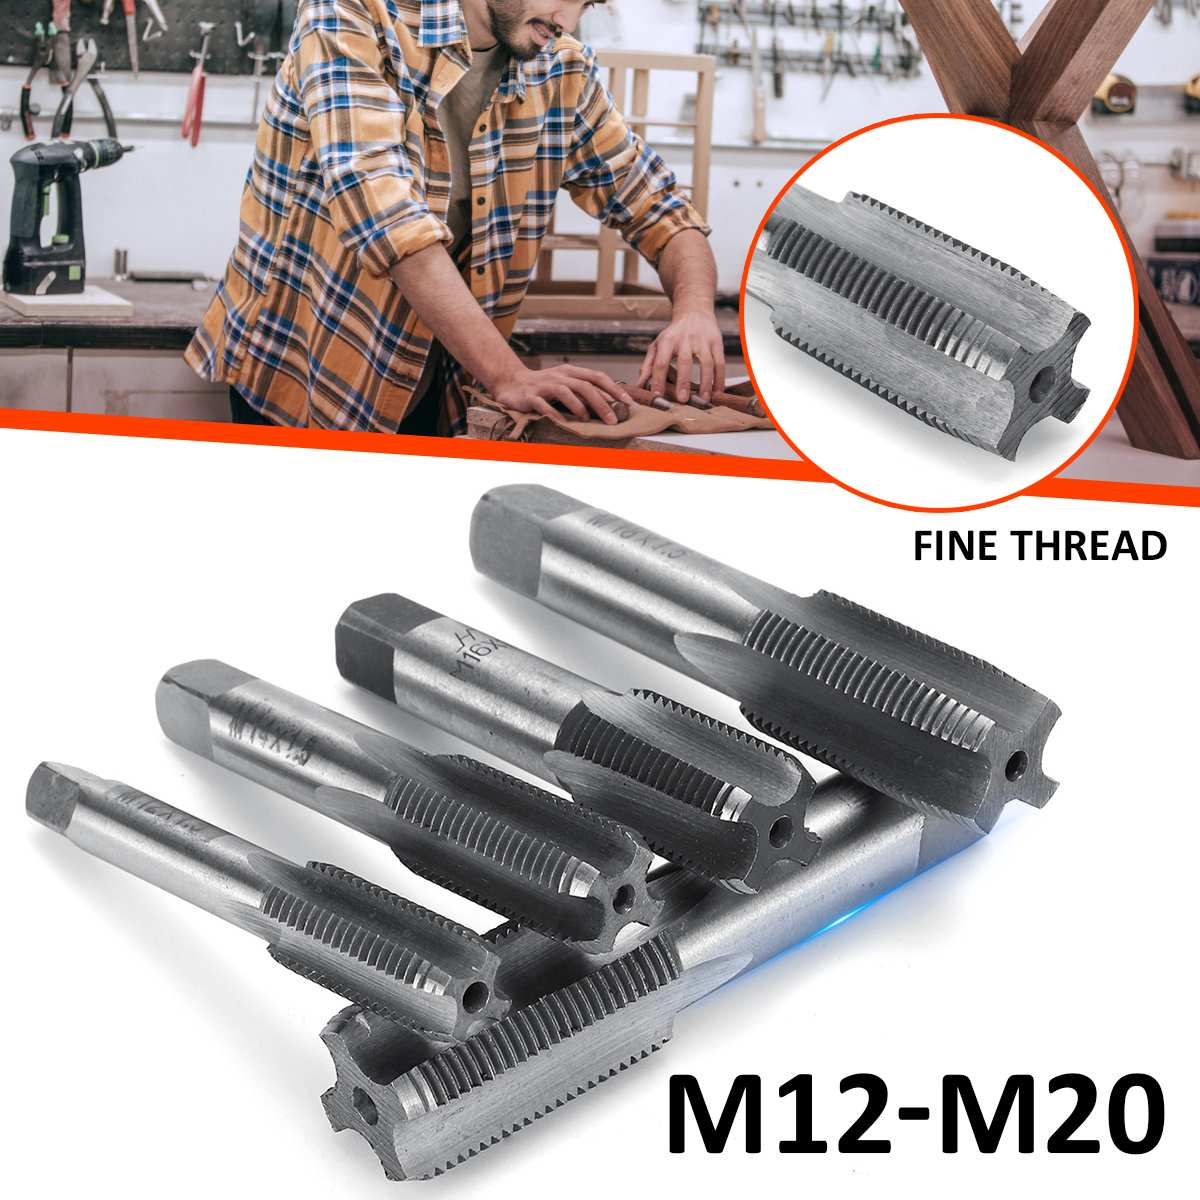 2pcs M12 M14 M16 M18 M20 HSS Right Hand Machine Straight Fluted Fine Screw Thread Metric Plug Hand Tap Drill Set Hand Tools